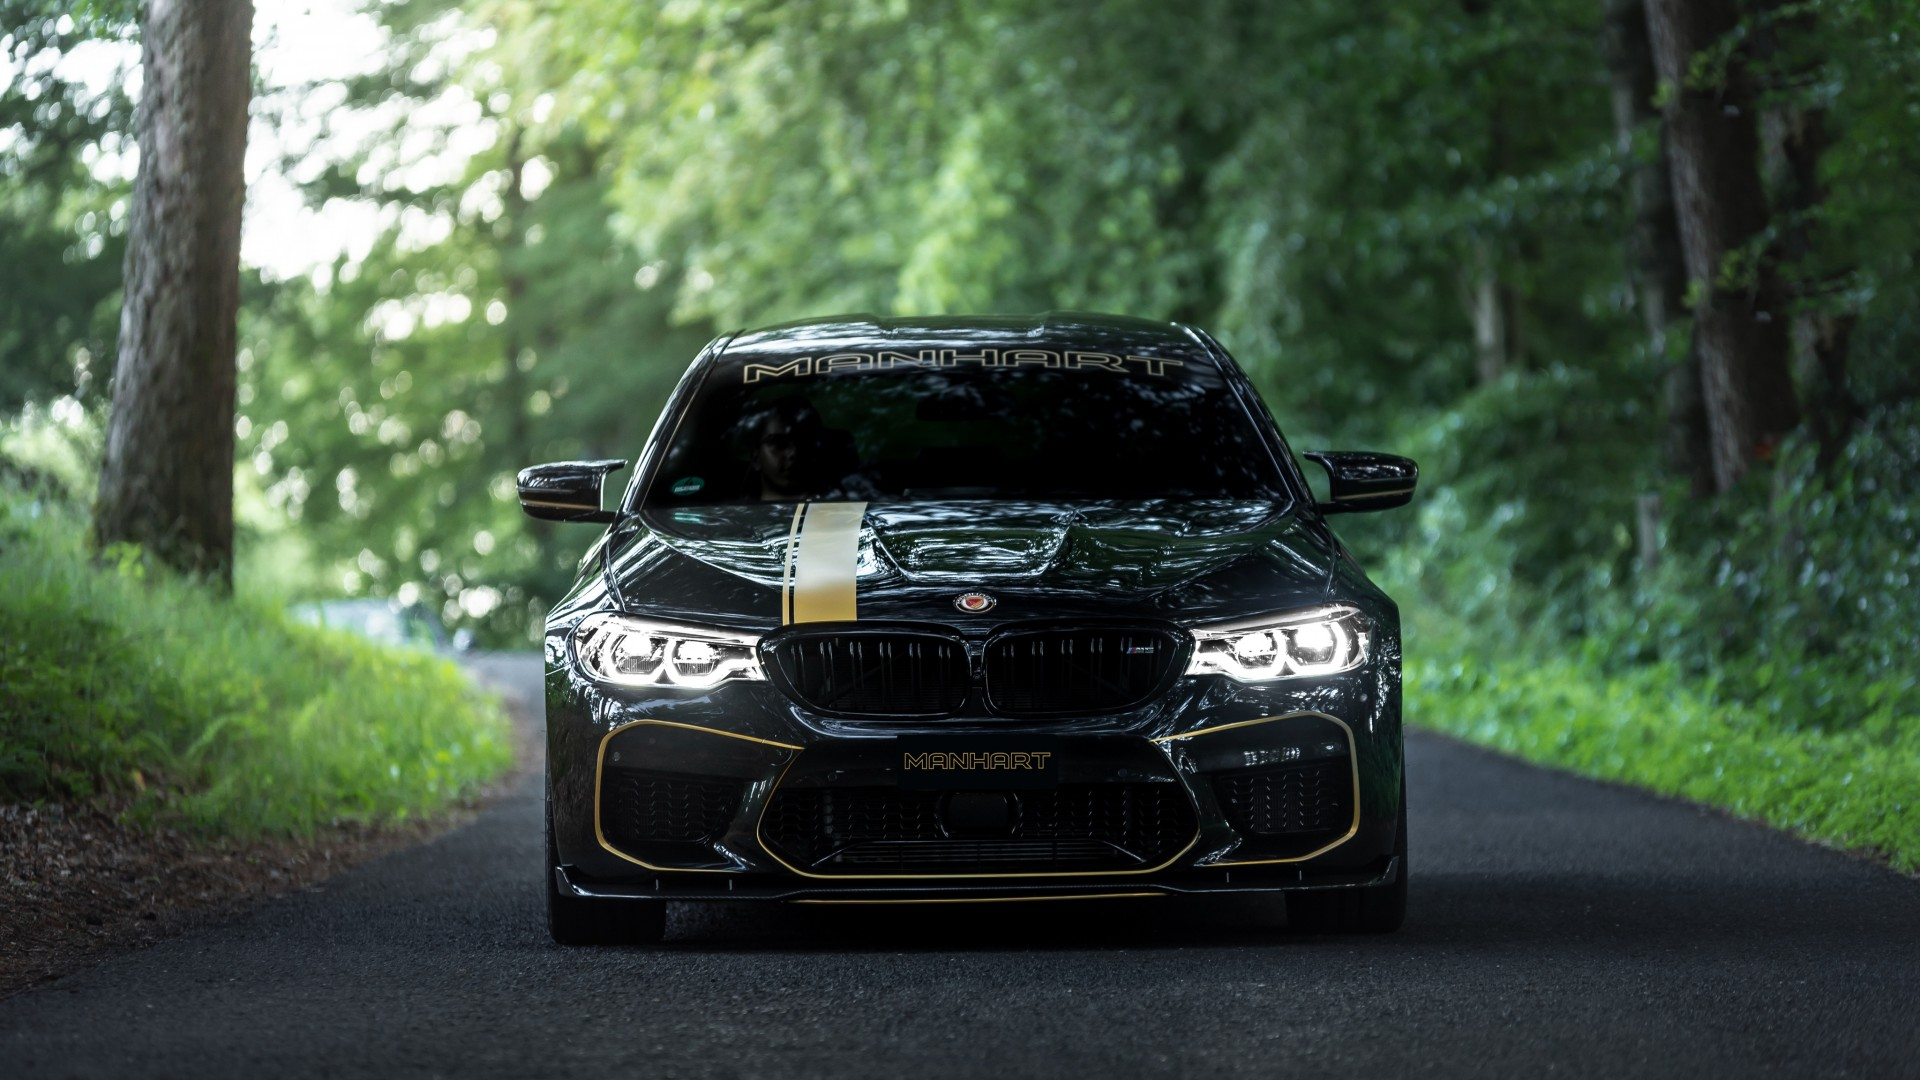 Bmw M5 Manhart Racing Mh5 700 2018 4k 2 Wallpaper Hd Car